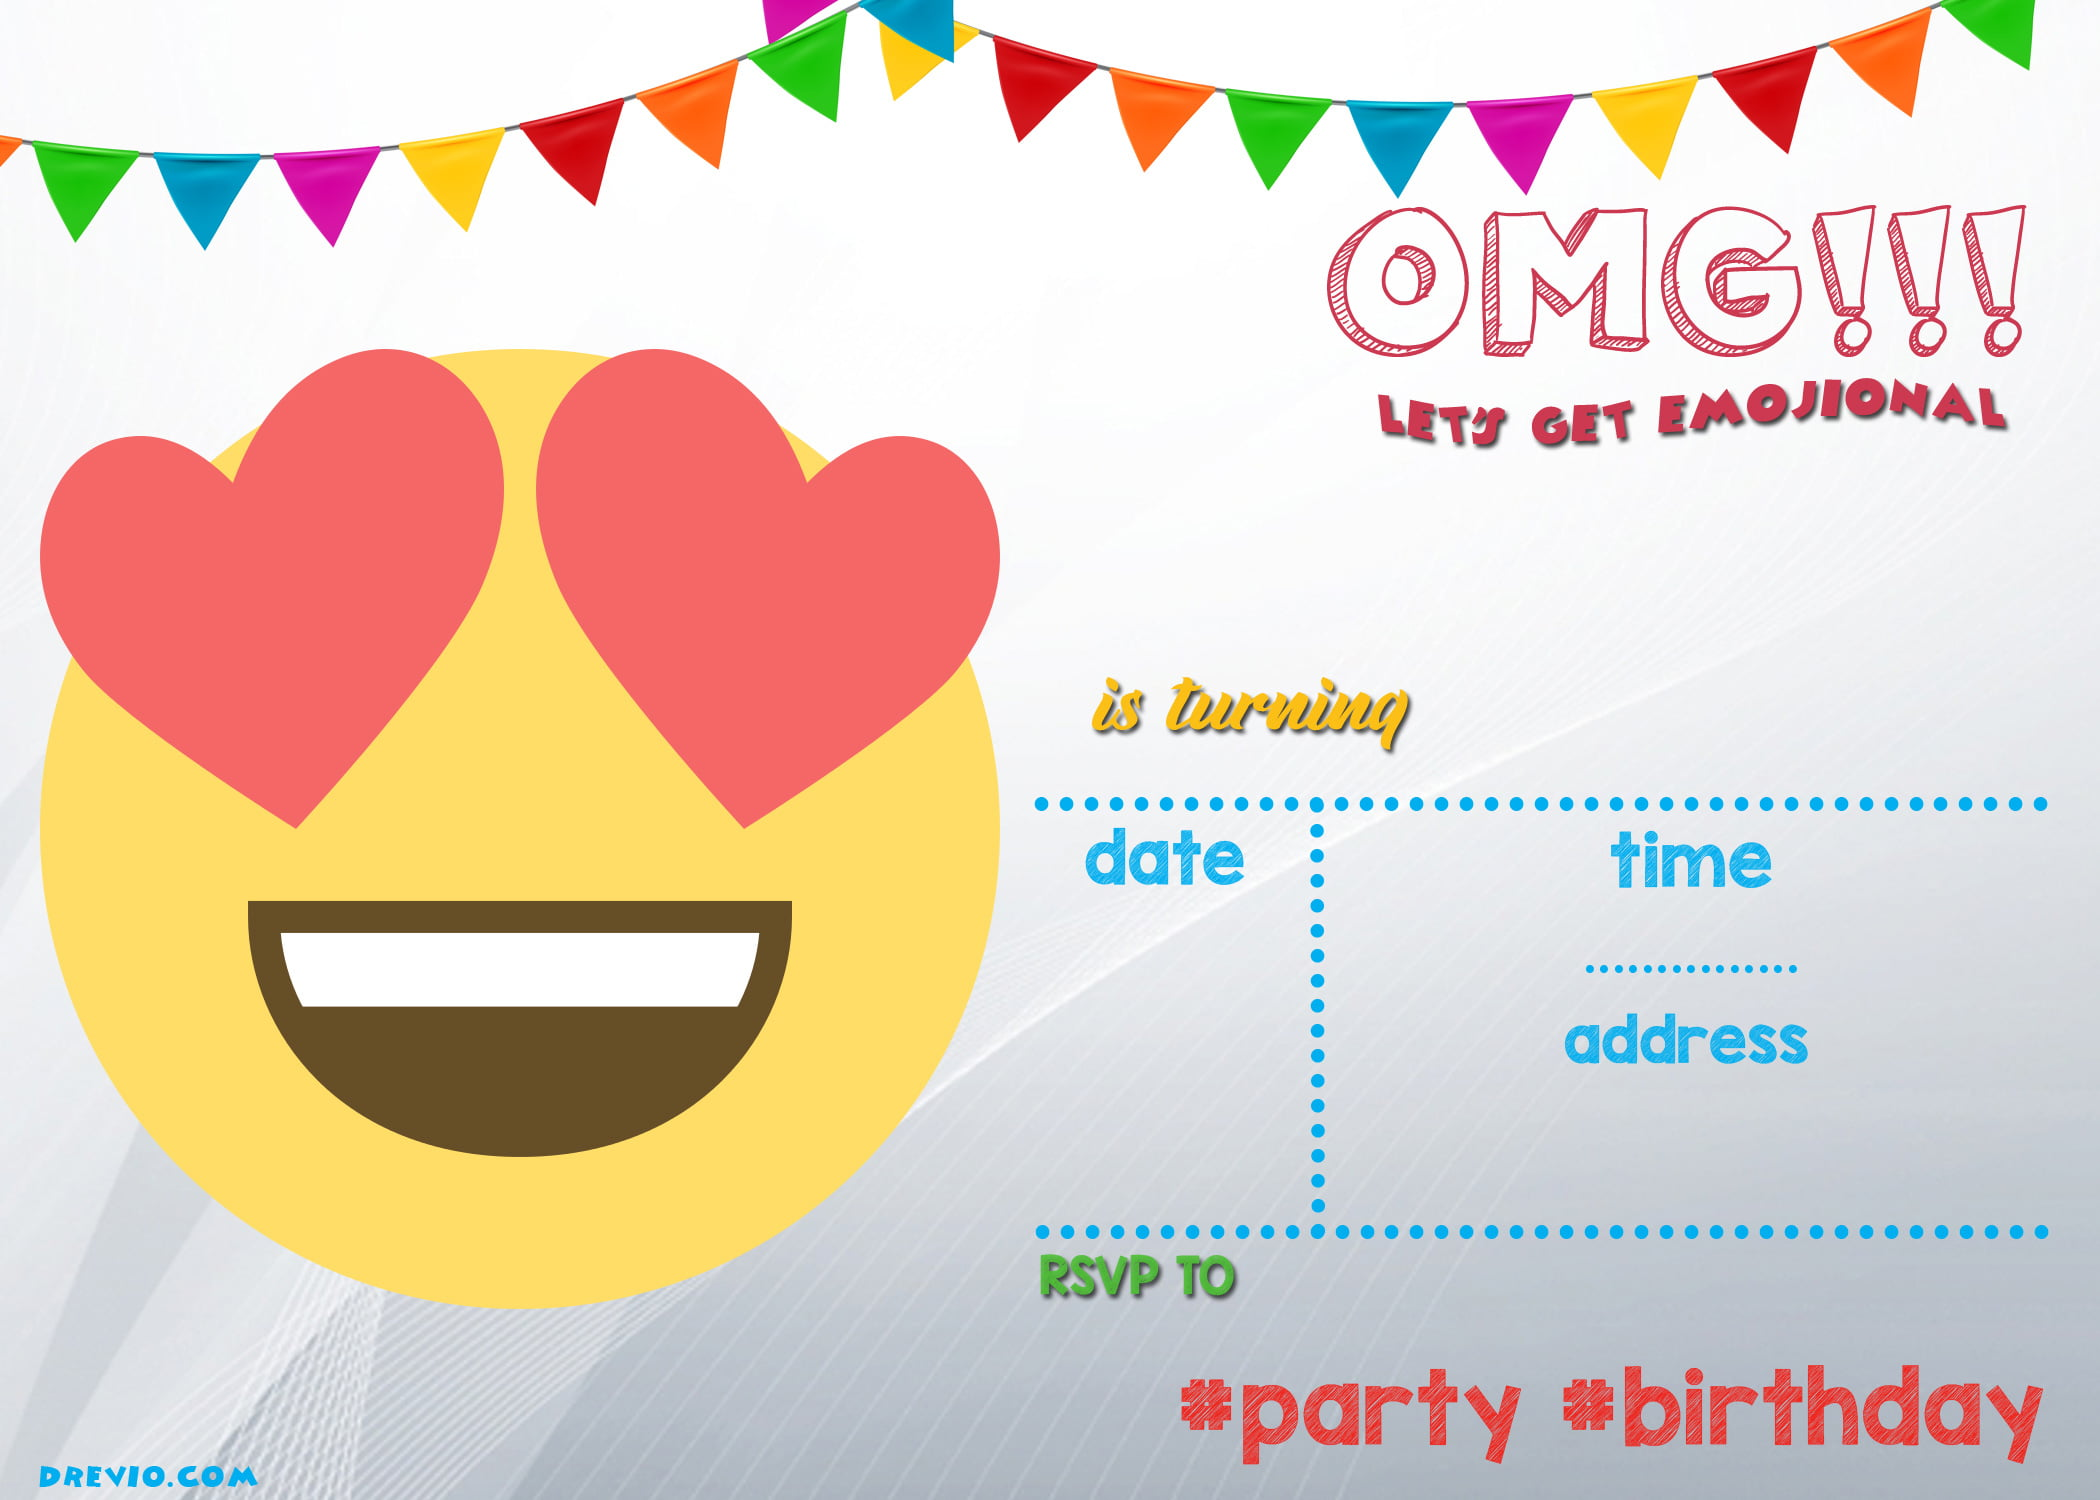 Remarkable You Can Simply Download Free Birthday Invitation By Clicking Image N Download Invitation Free Printable Emoji Invitation Template Free Invitation Templates wedding invitation Emoji Birthday Invitations